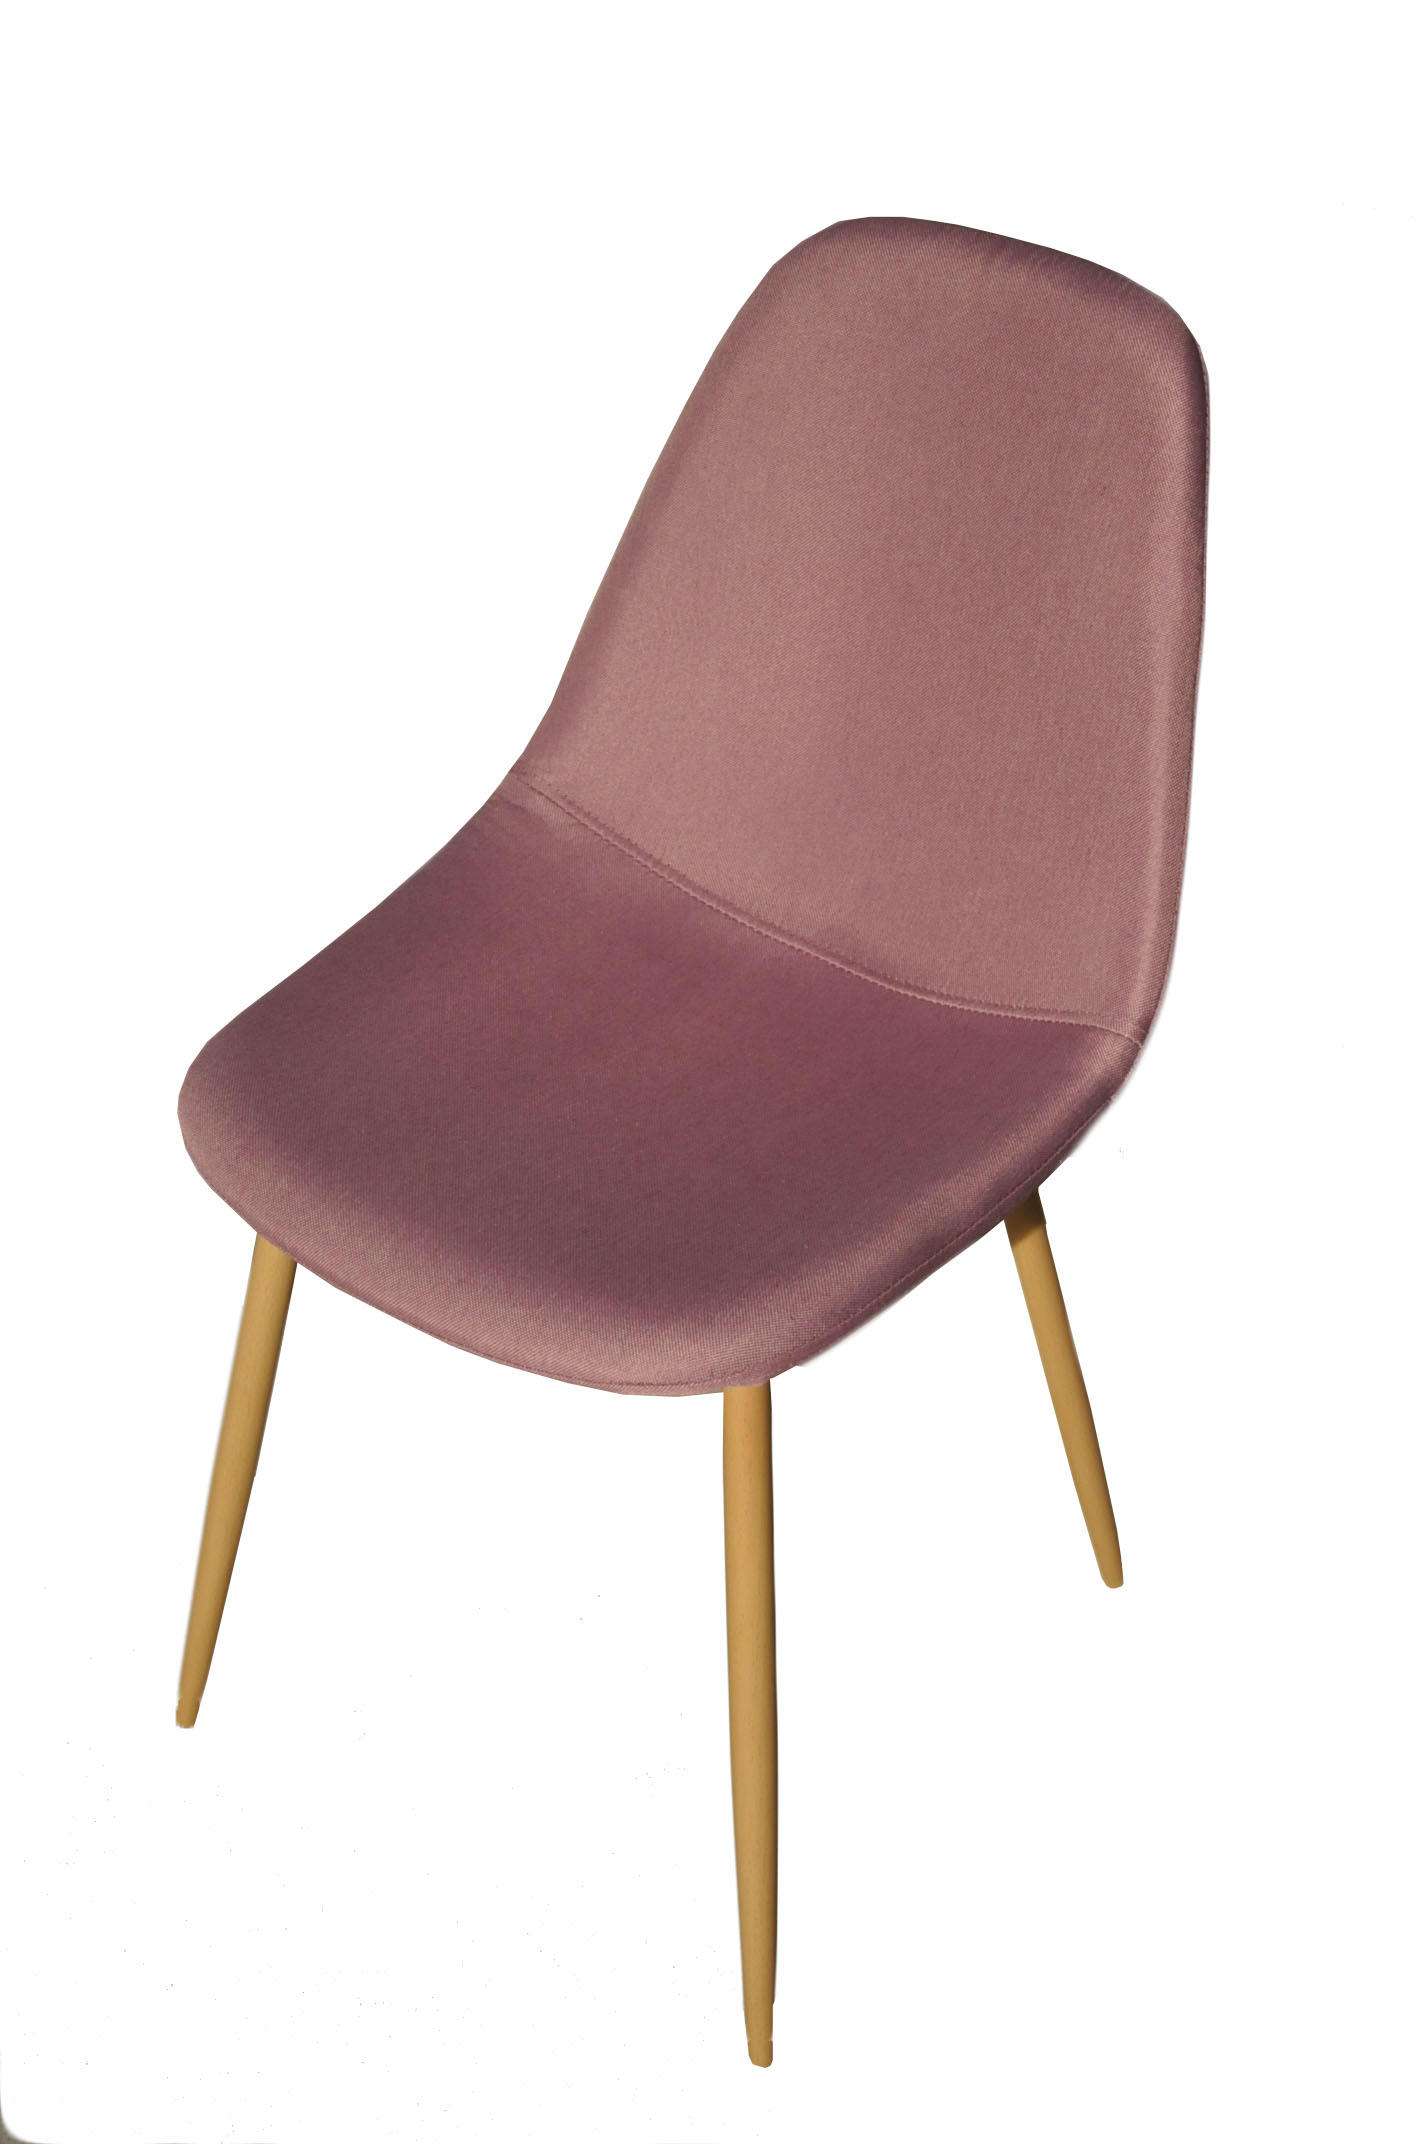 Emejing chaise de jardin rose contemporary design trends for Table jardin et chaises